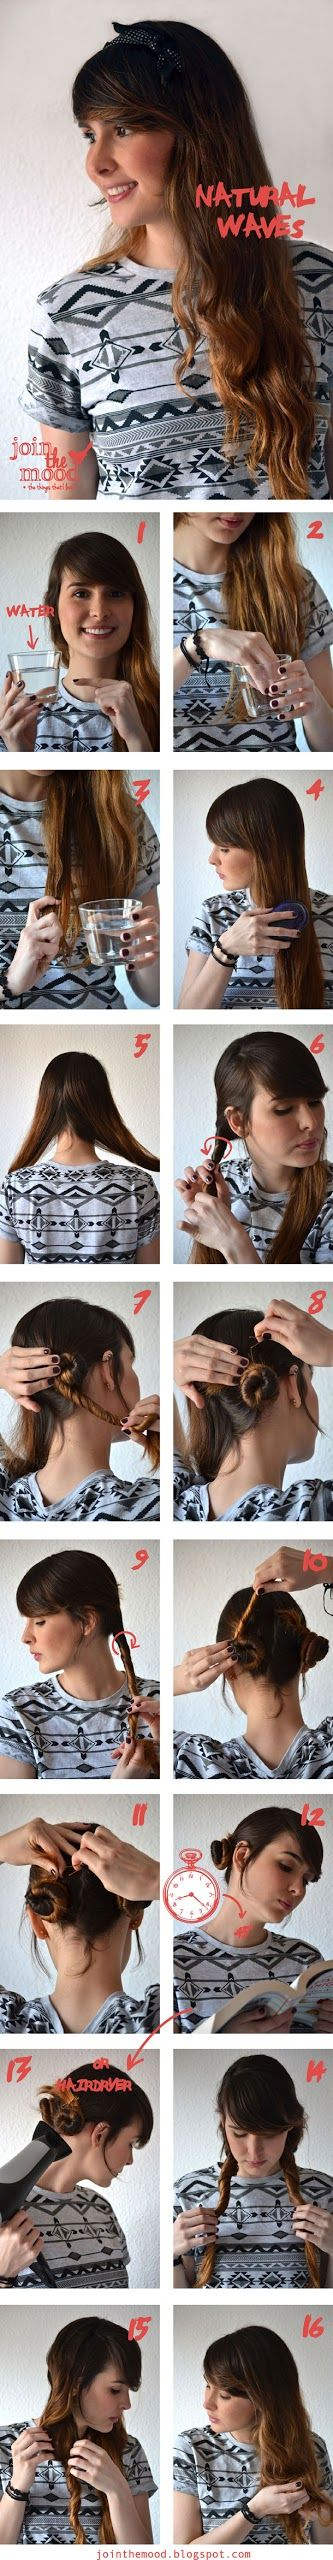 best images about hair tutorials on pinterest updo victory